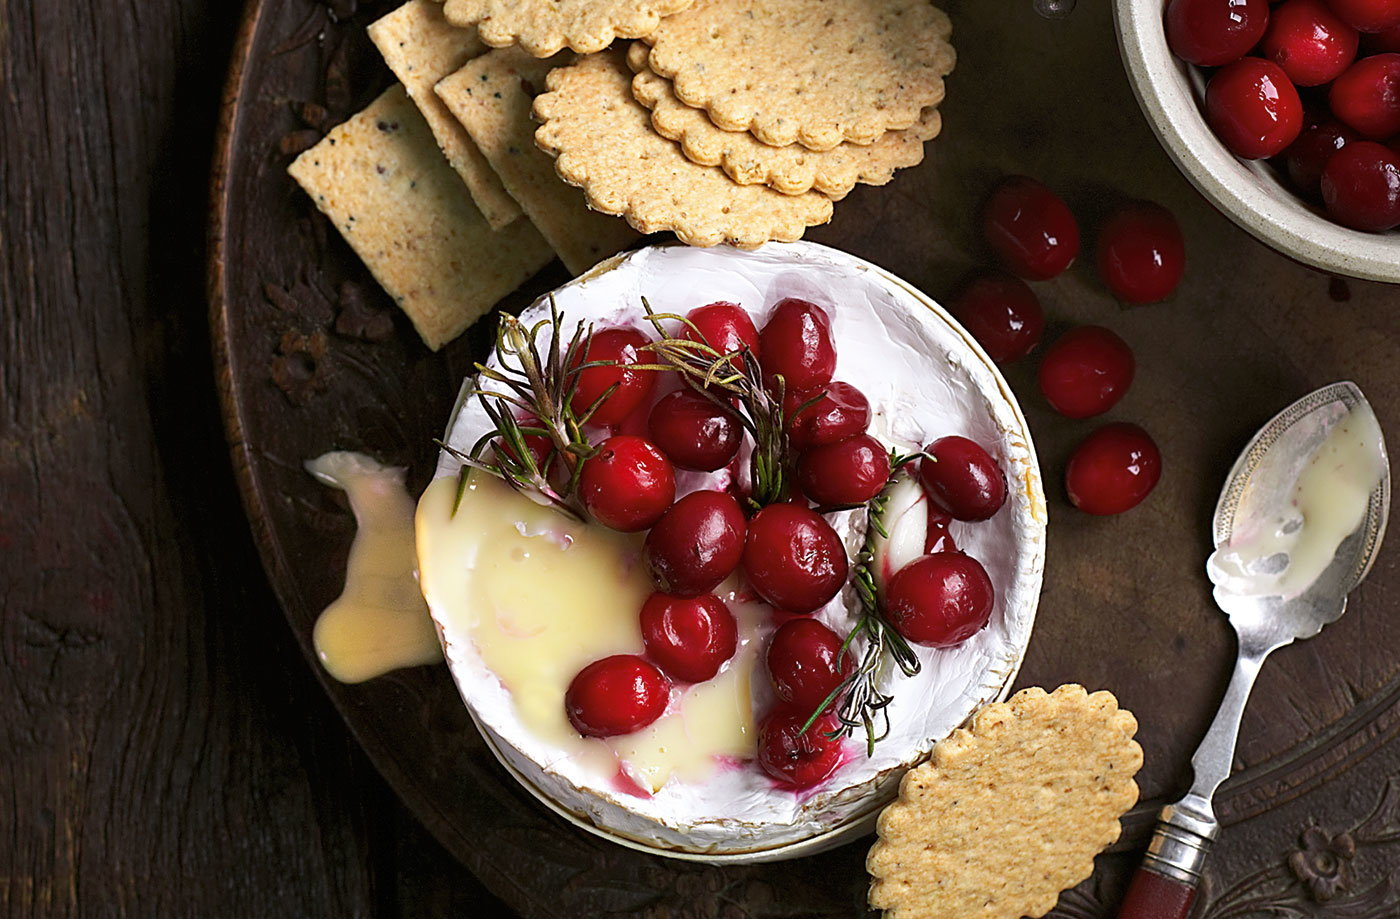 Camembert baked with cranberries